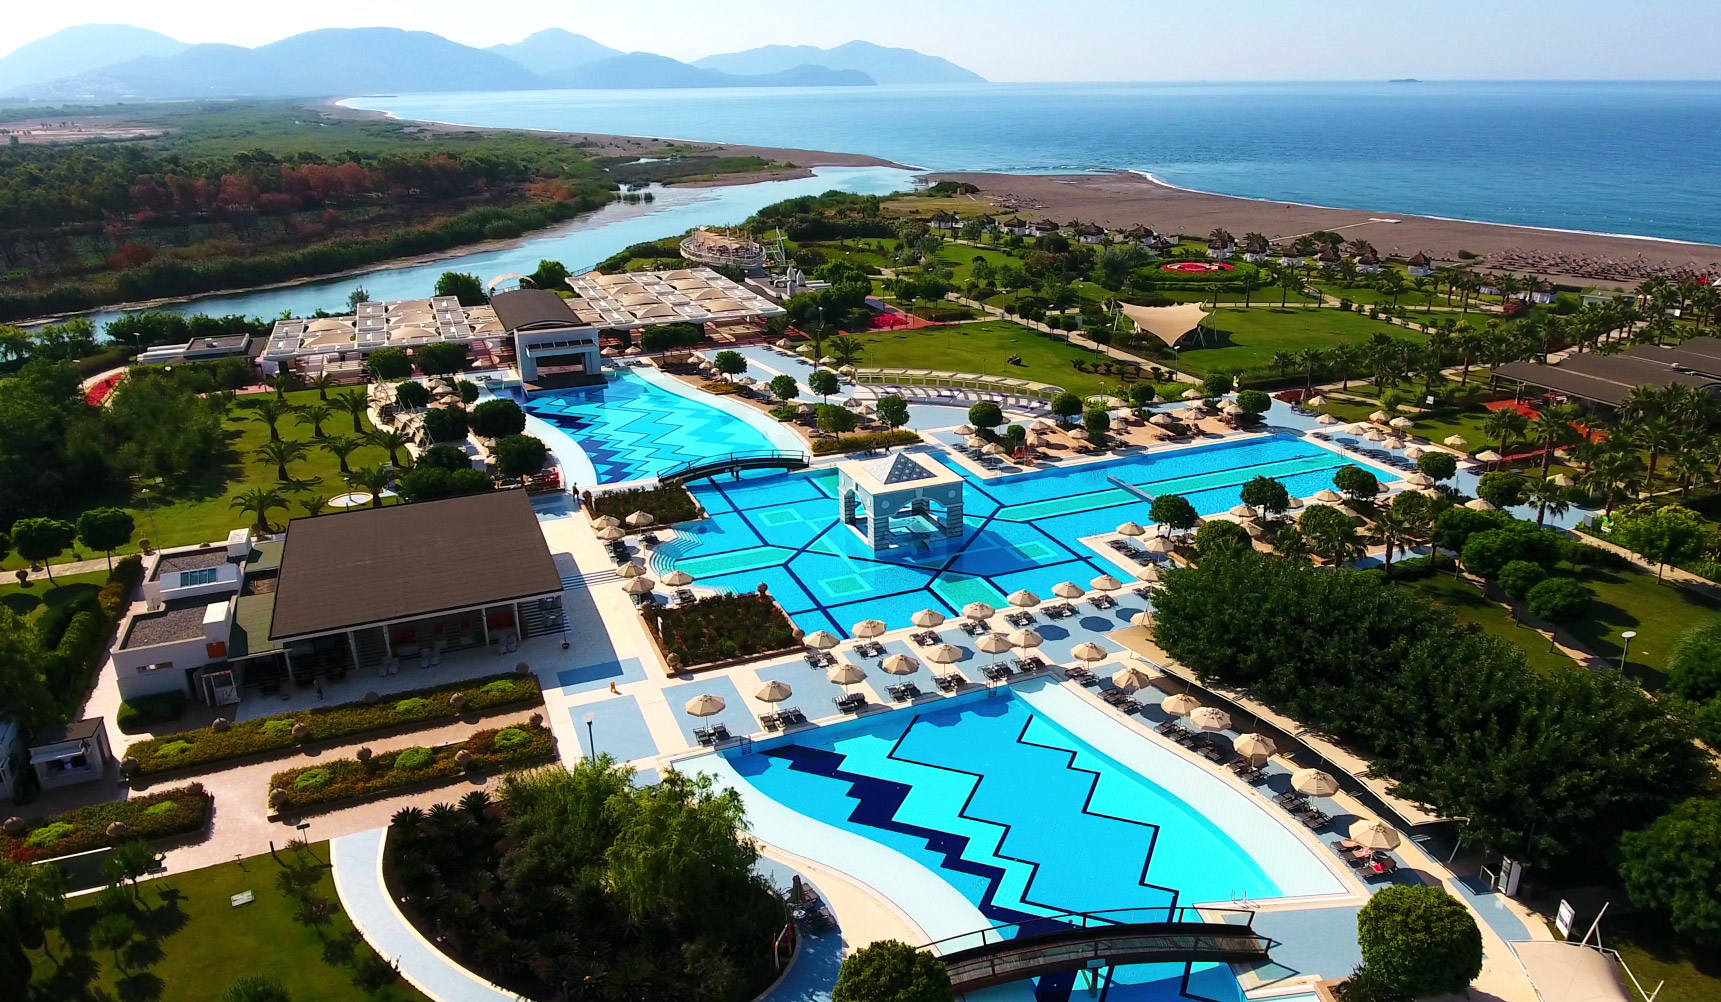 Tunc Batum Tells Us Why Dalaman Is The Ultimate Wellbeing Destination